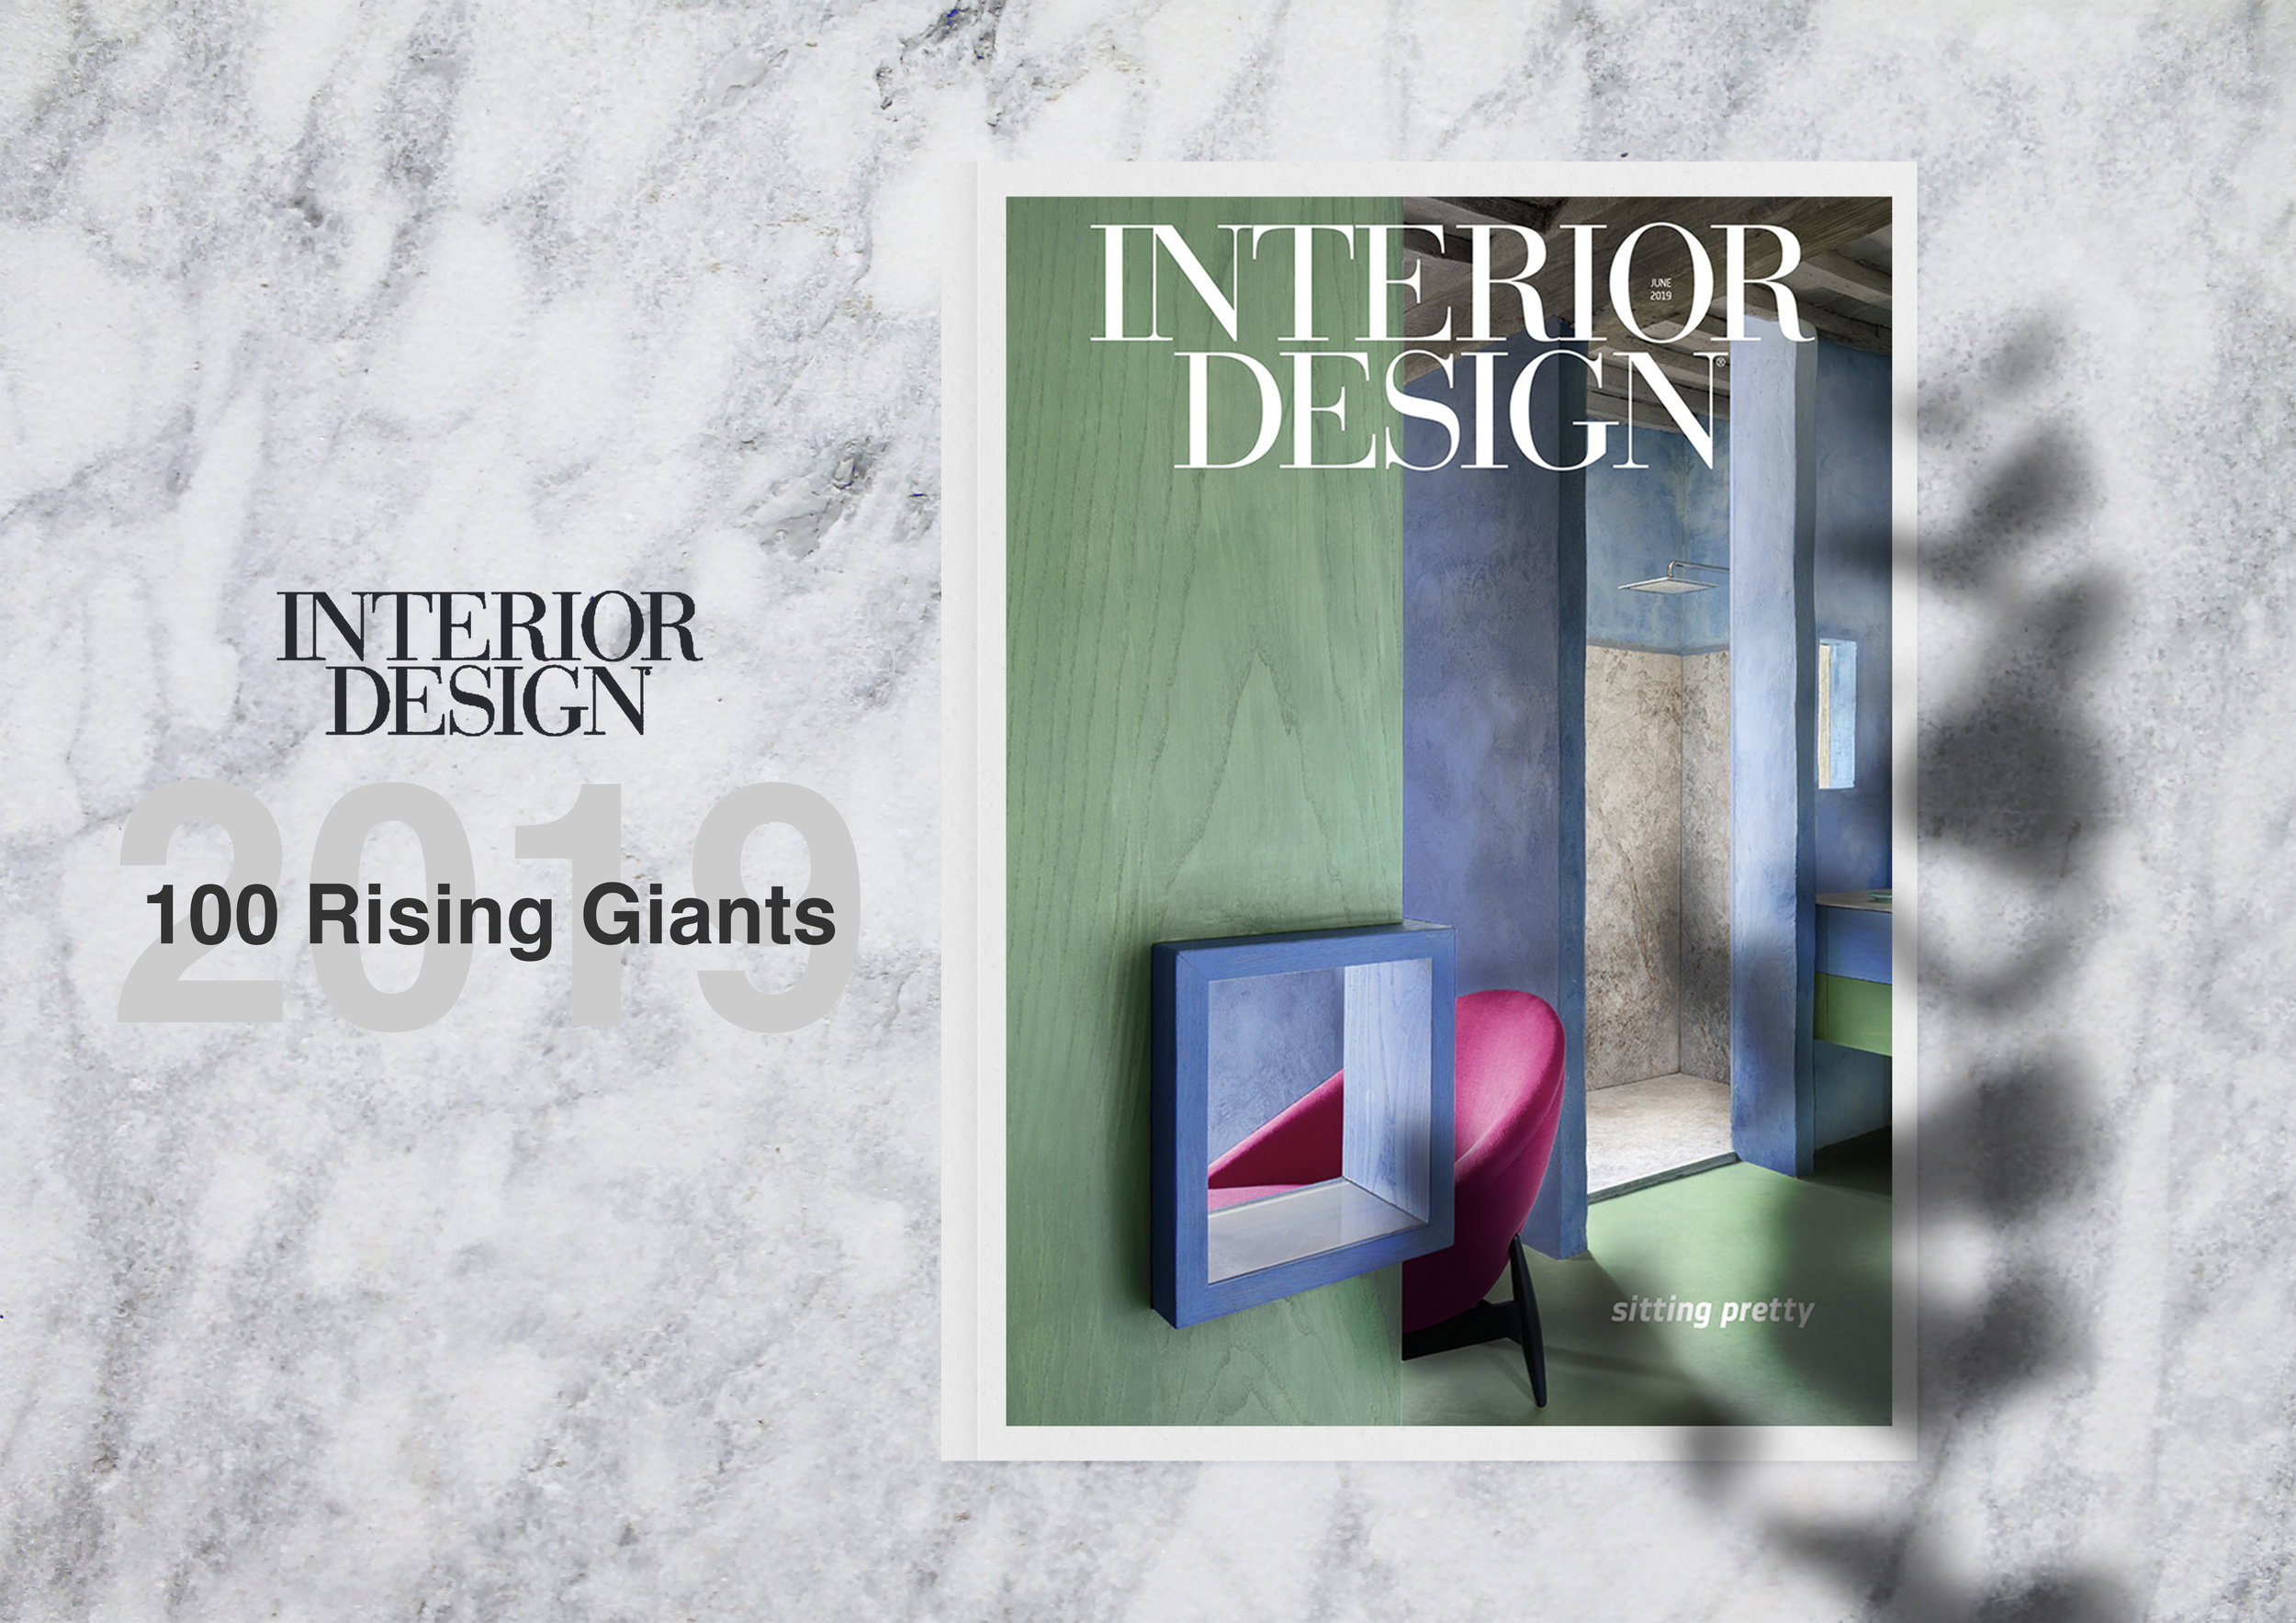 190729 Interior Design Rising Giants.jpg